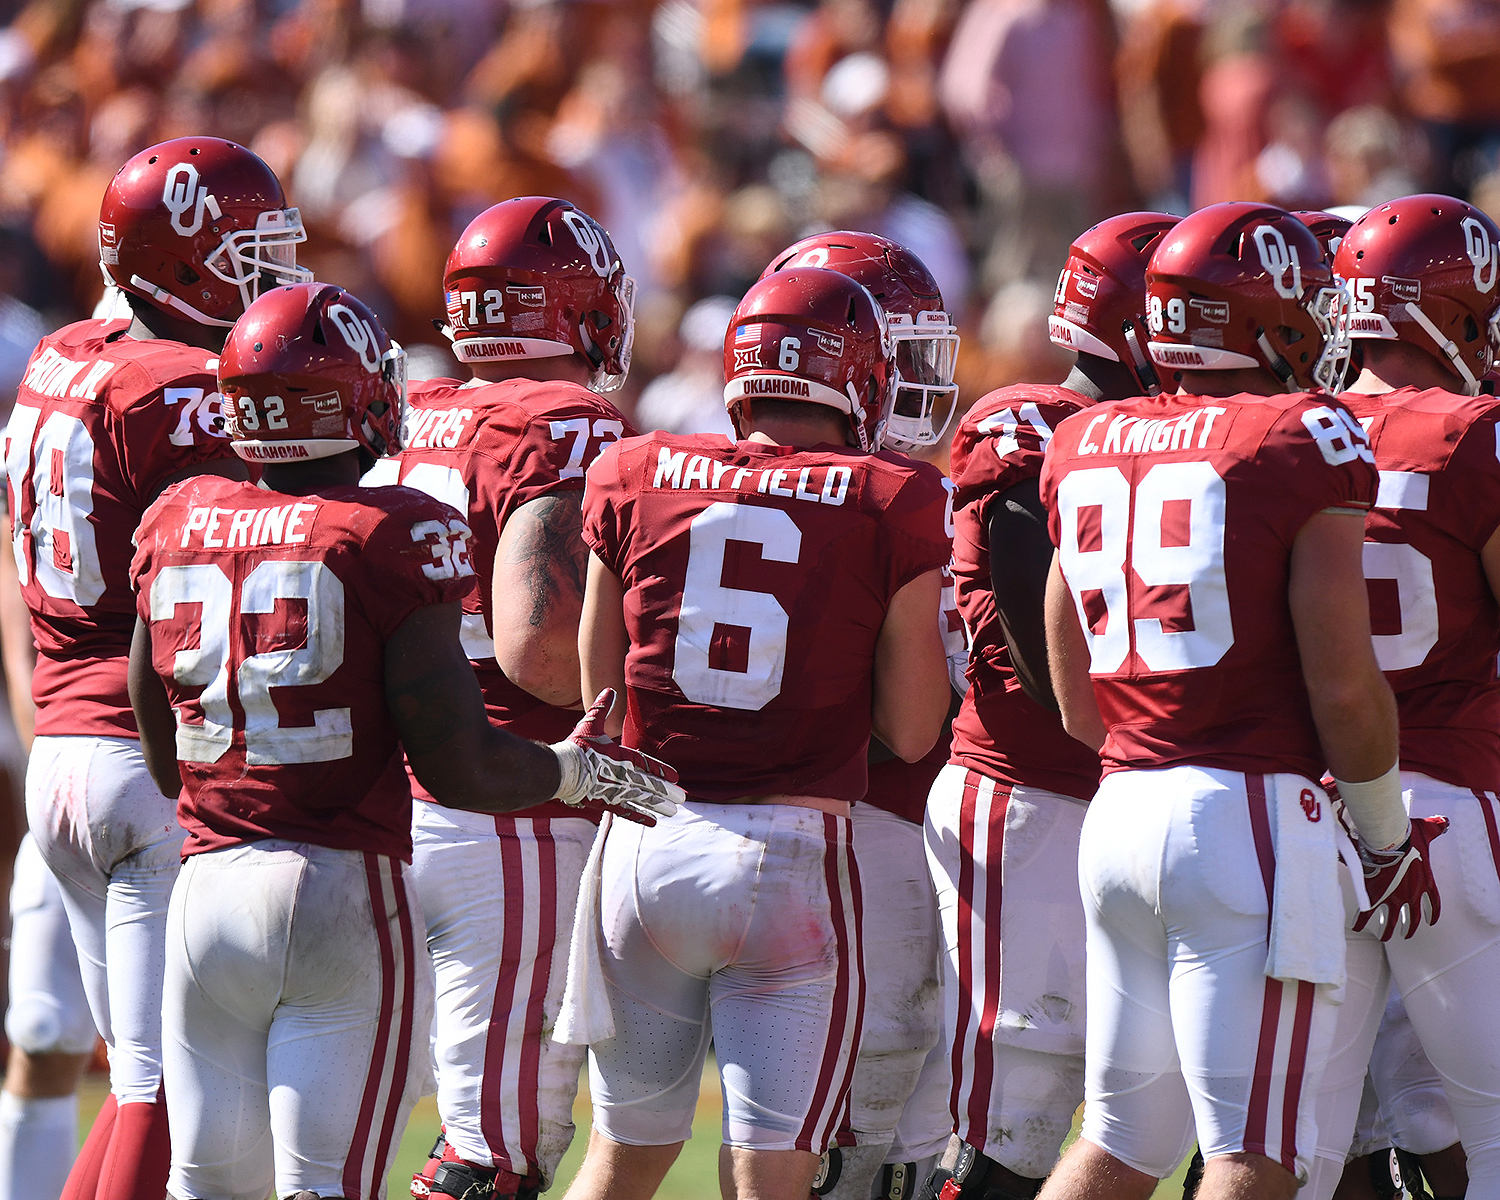 Brown (far left) still stands out among his teammates for his size, but he's found ways to control his weight.